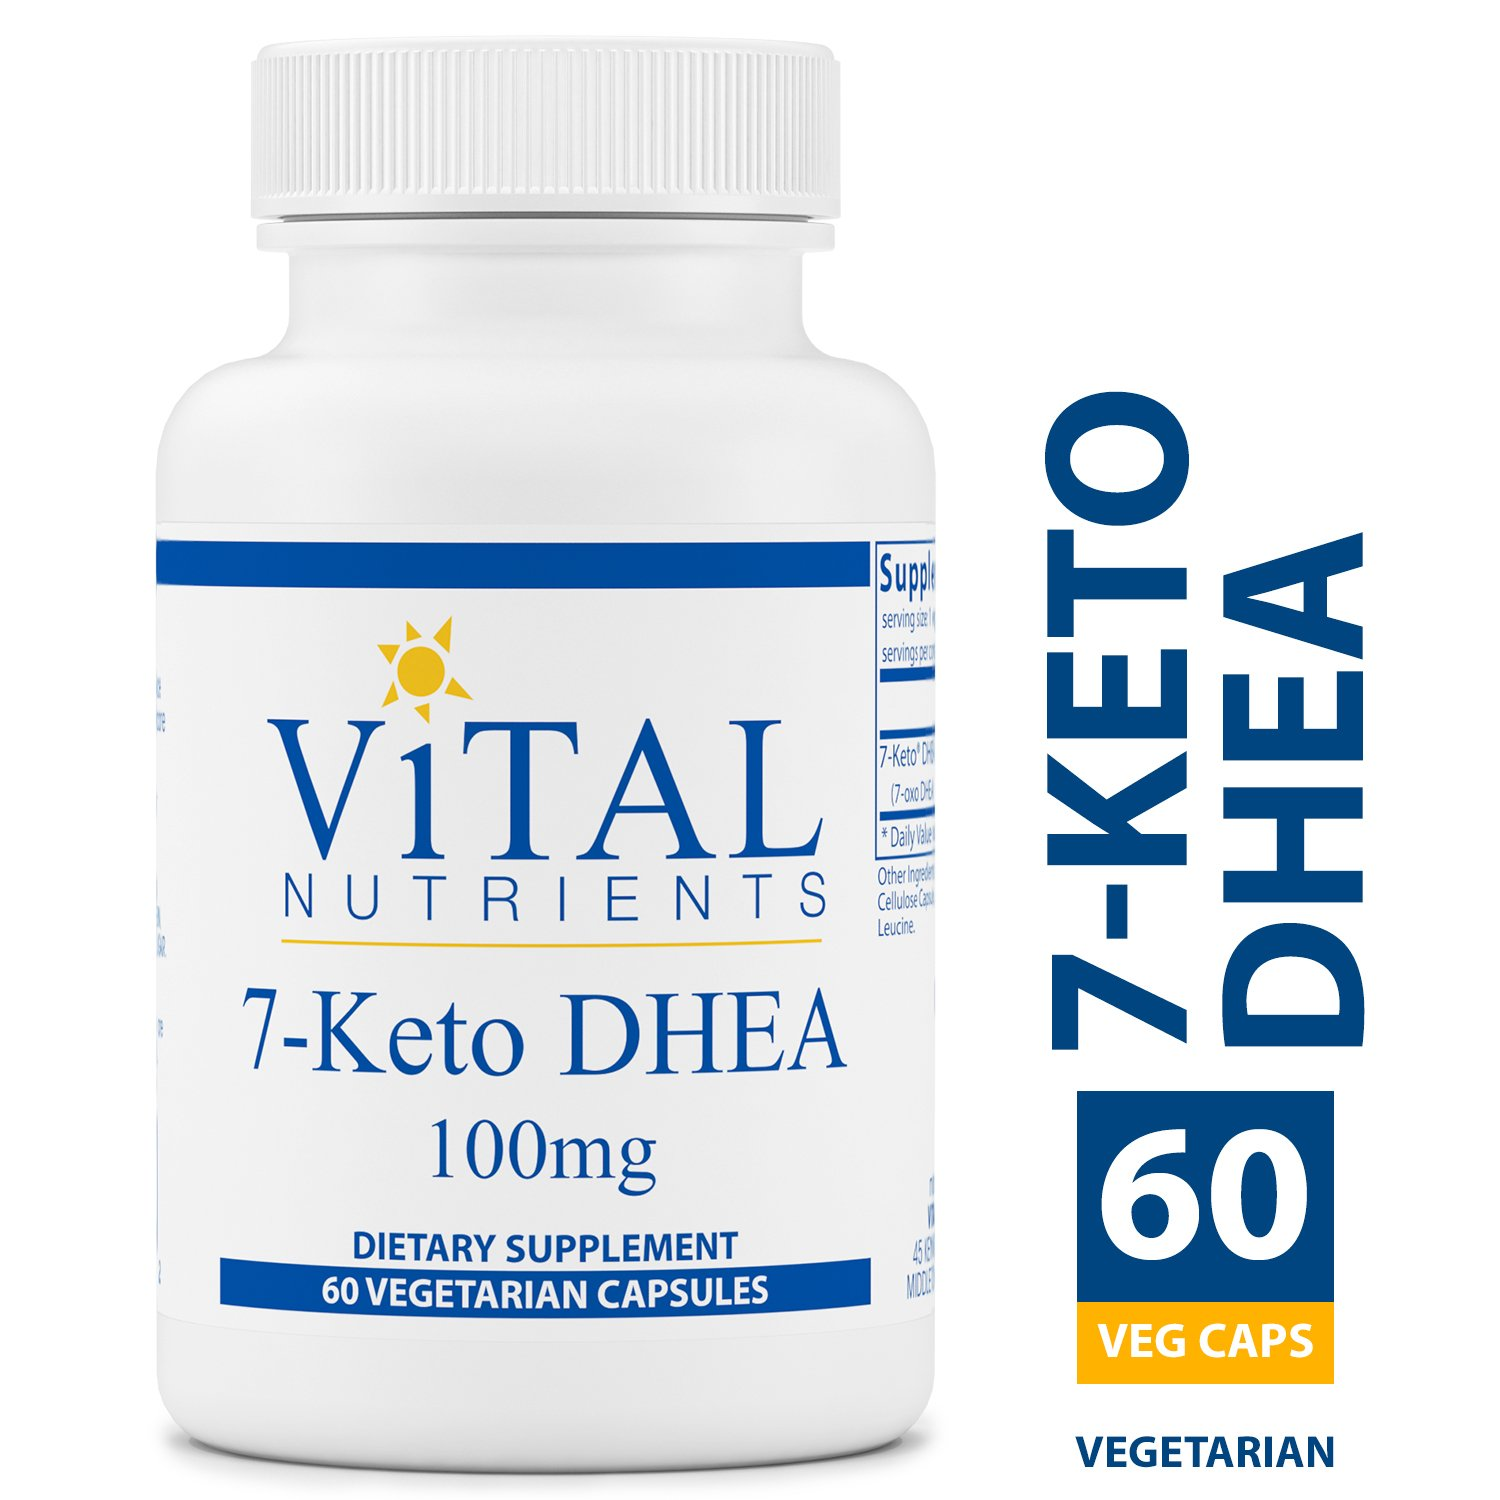 Vital Nutrients - 7-Keto DHEA 100 mg - Natural Metabolite Promoting Healthy Resting Metabolic Rate (RMR) - Supports Healthy Weight Management - 60 Capsules per Bottle